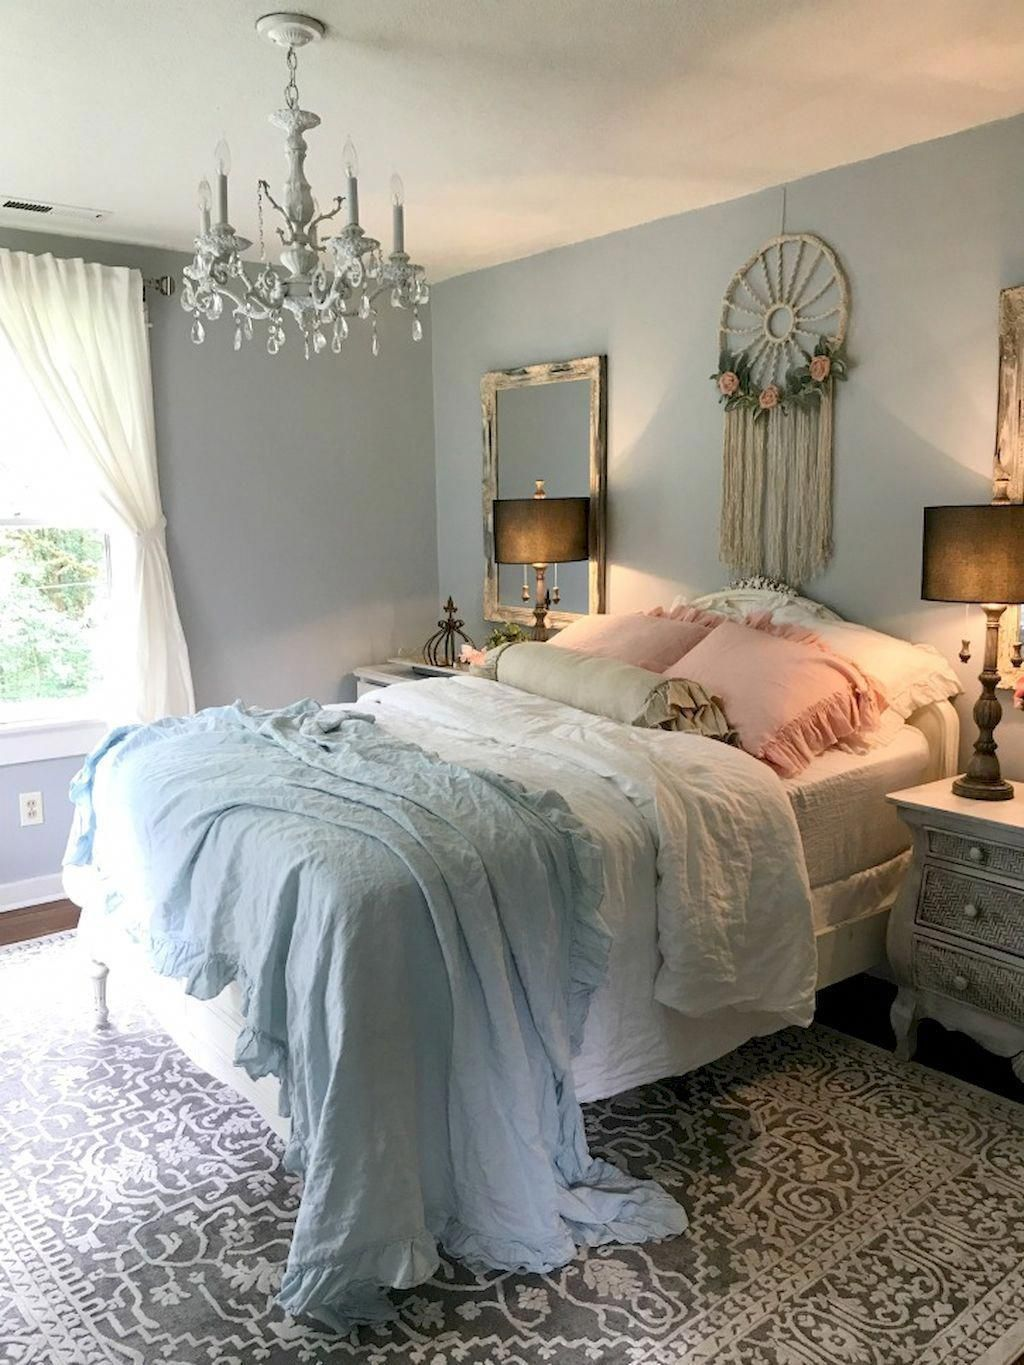 wonderful romantic shabby chic bedroom | Romantic Shabby Chic Bedroom Decorating Ideas | Shabby ...